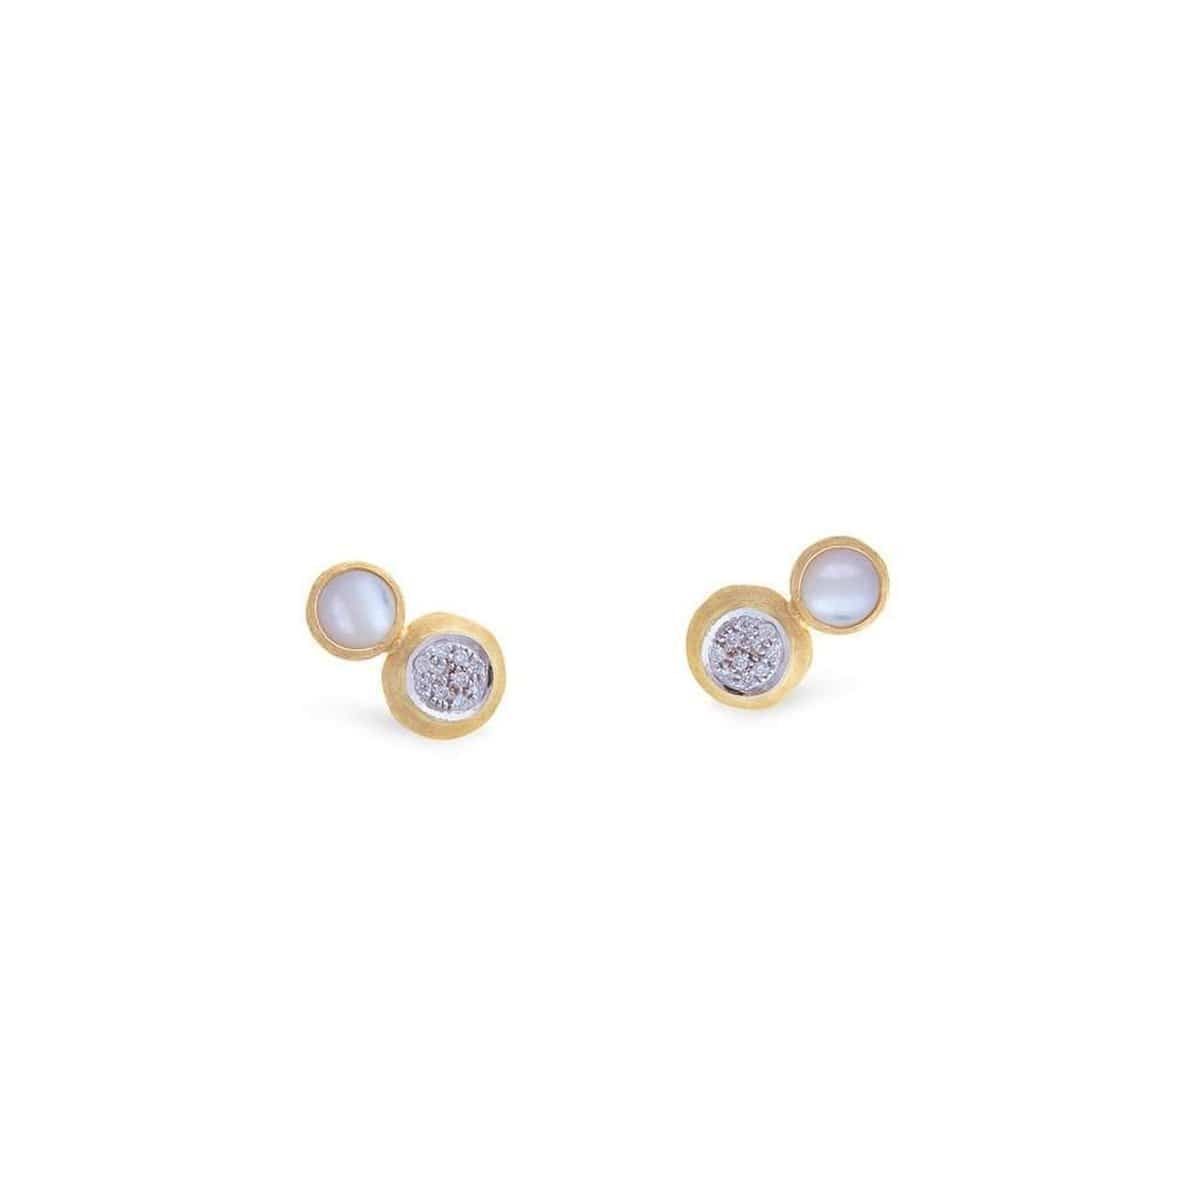 Jaipur Diamond & Mother of Pearl Stud - OB1518 B MPW YW-Marco Bicego-Renee Taylor Gallery